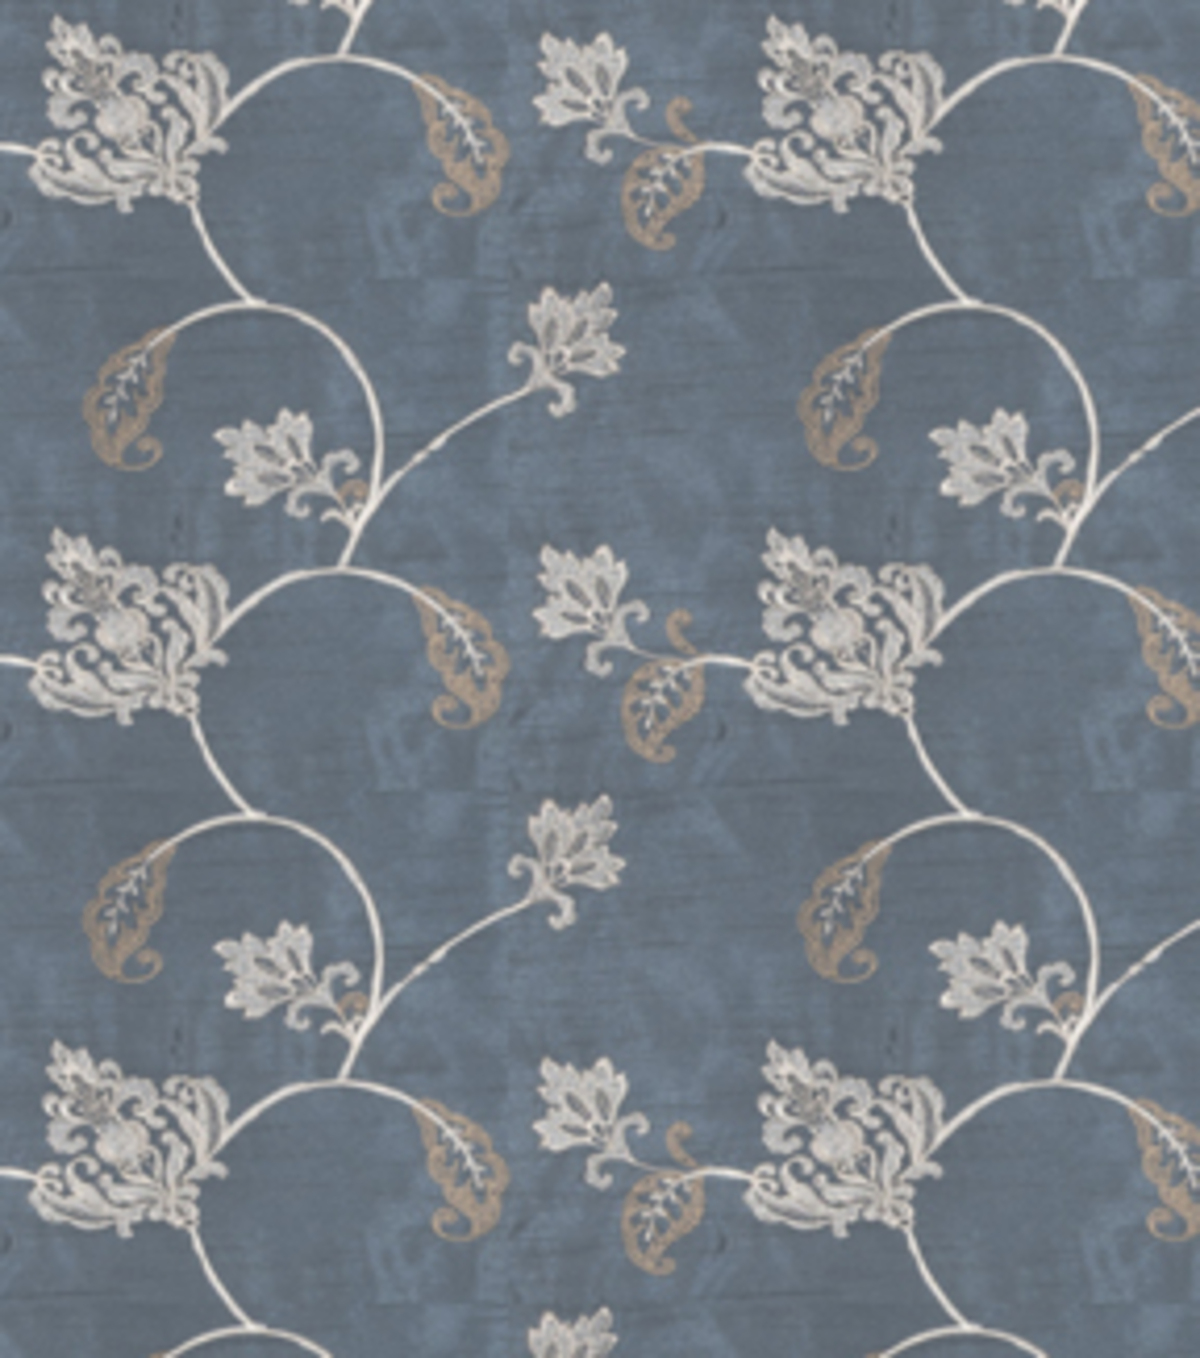 "Home Decor 8""x8"" Fabric Swatch-Print Fabric Eaton Square Married Teal"